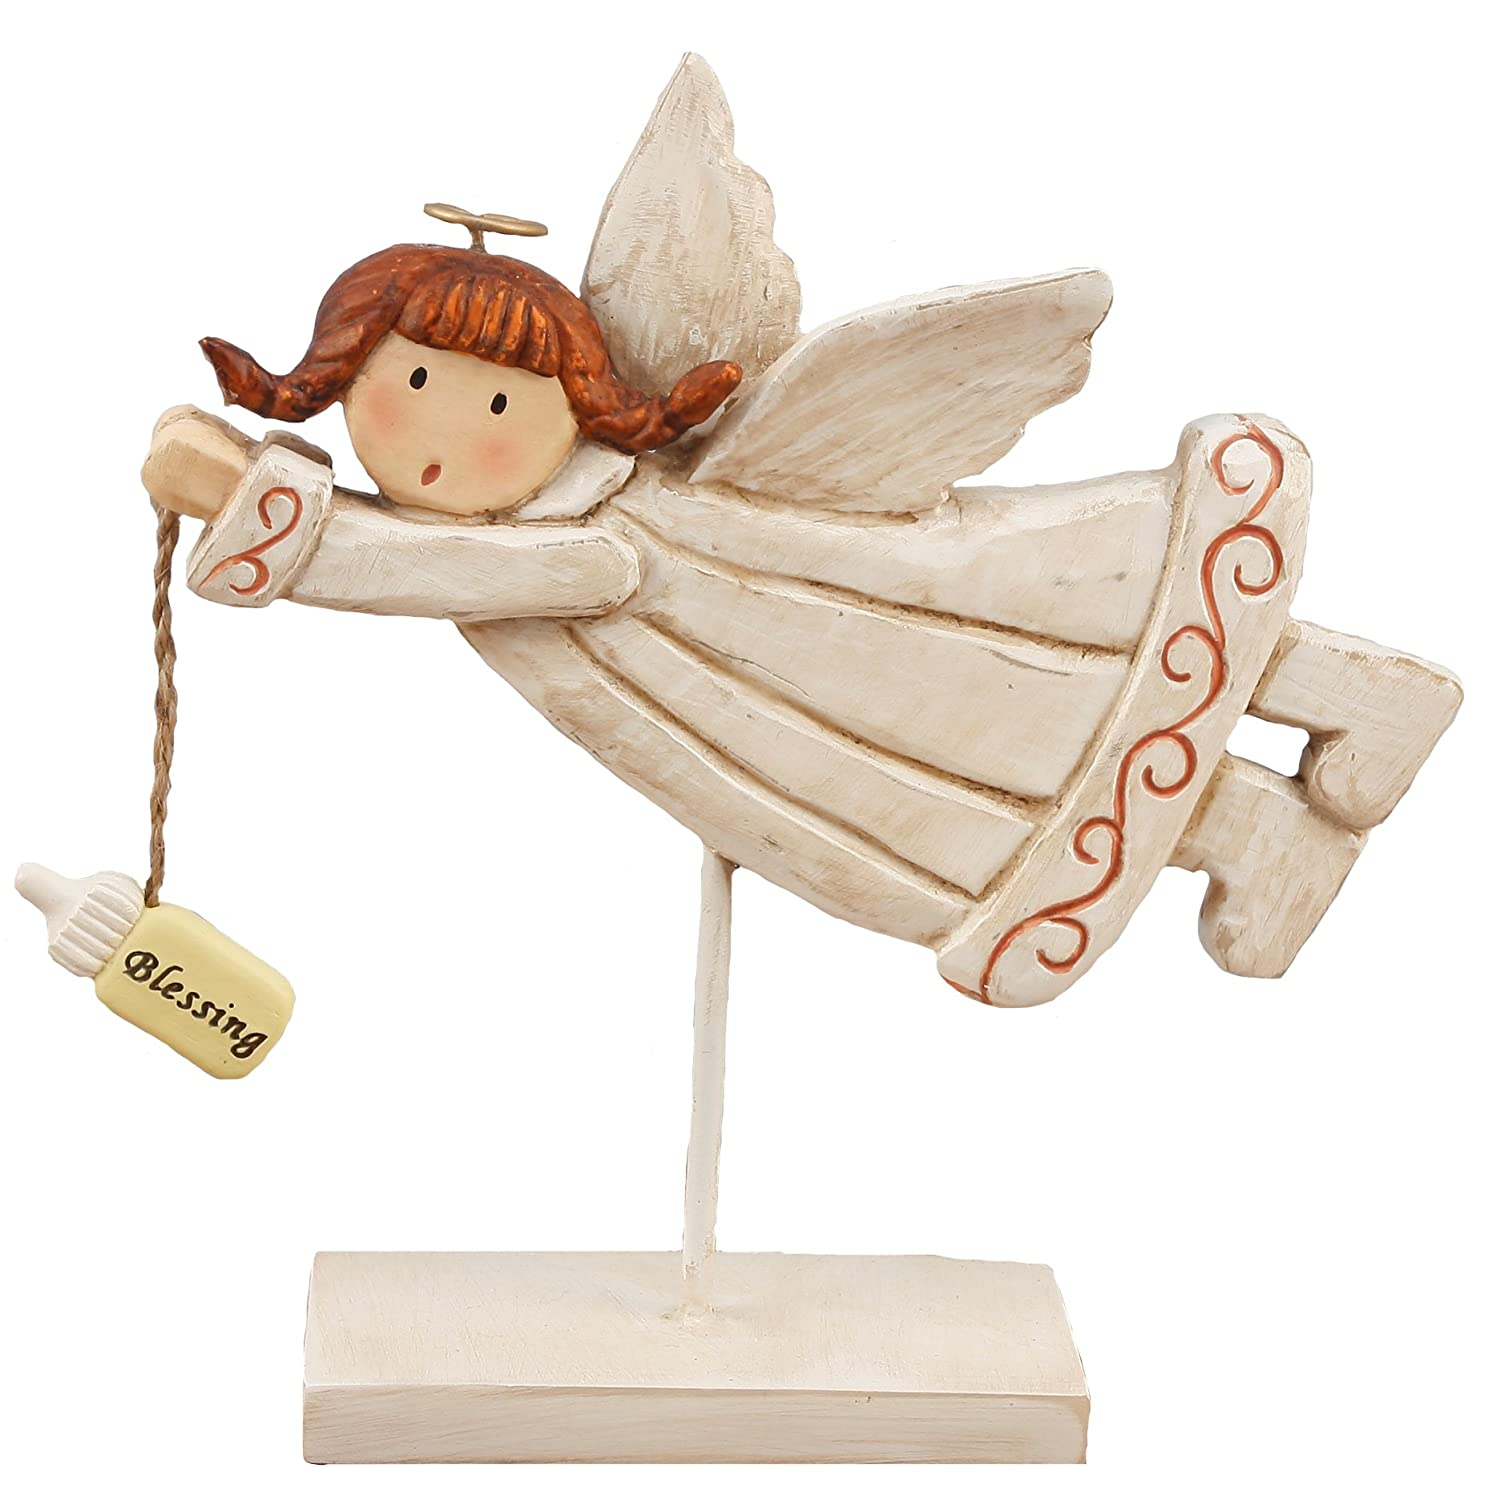 Youngs Resin Angel Holding Baby Bottle Figurine 7.25-Inch